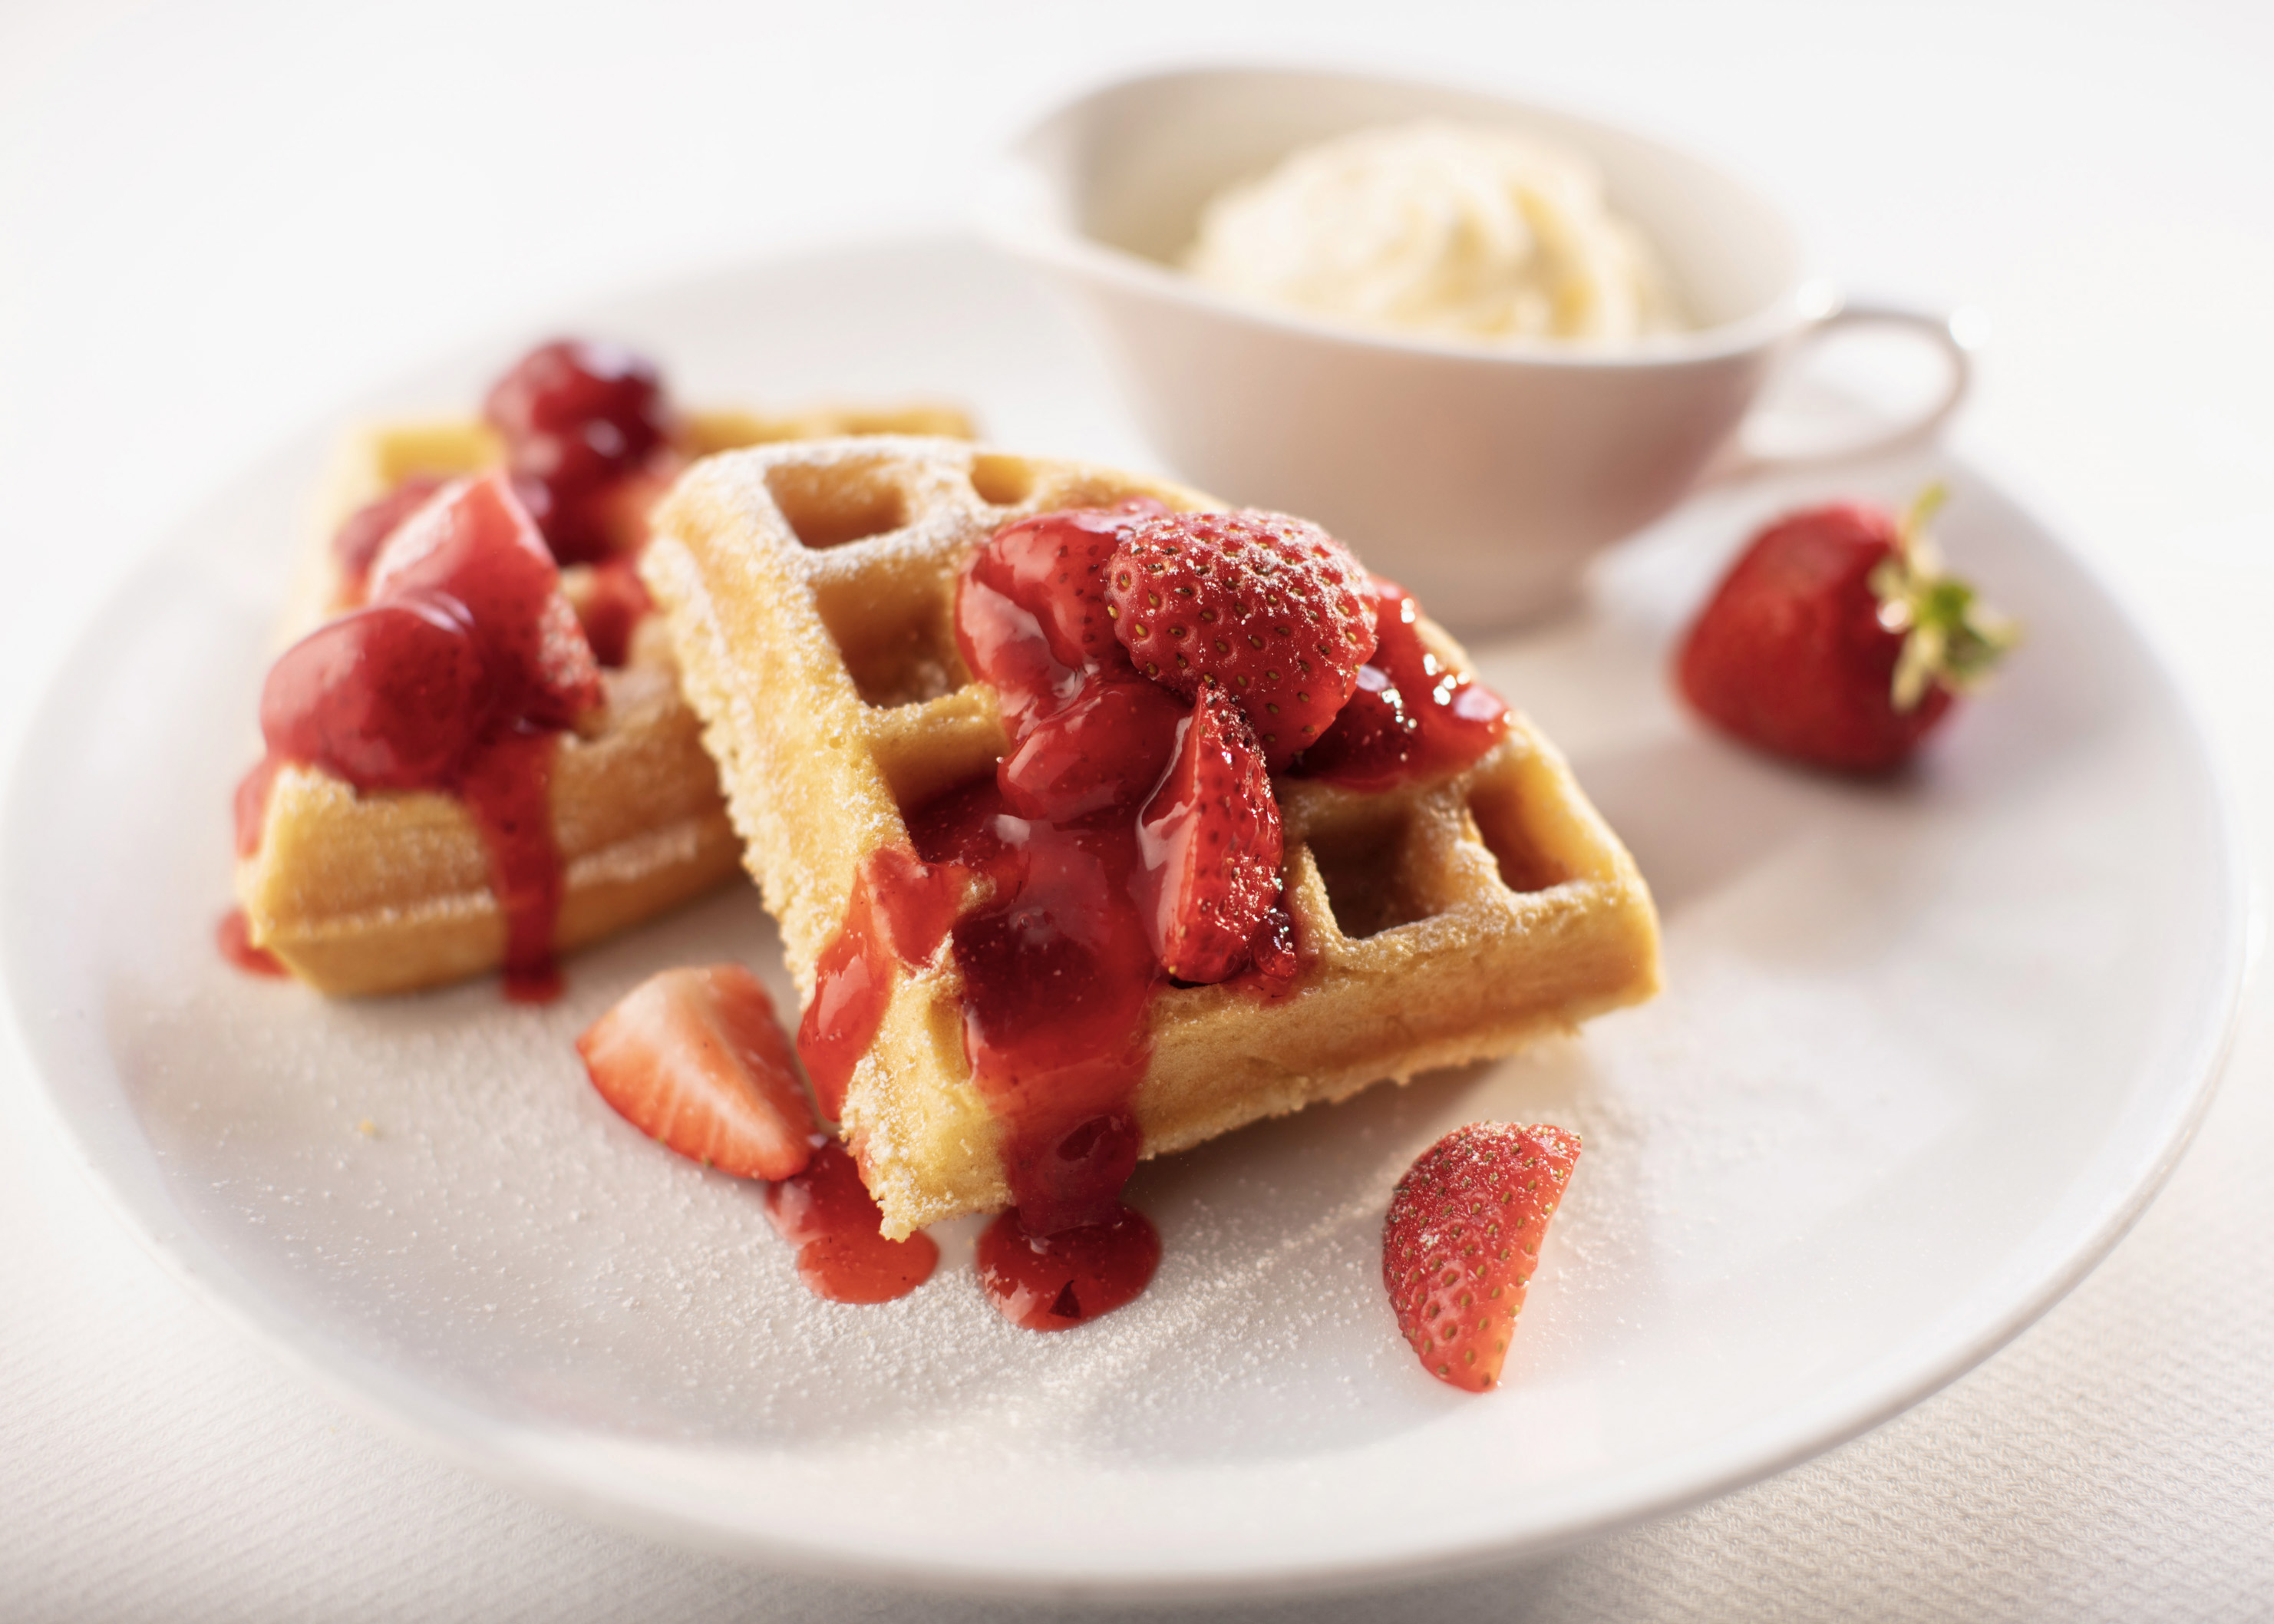 Plated waffles and strawberries